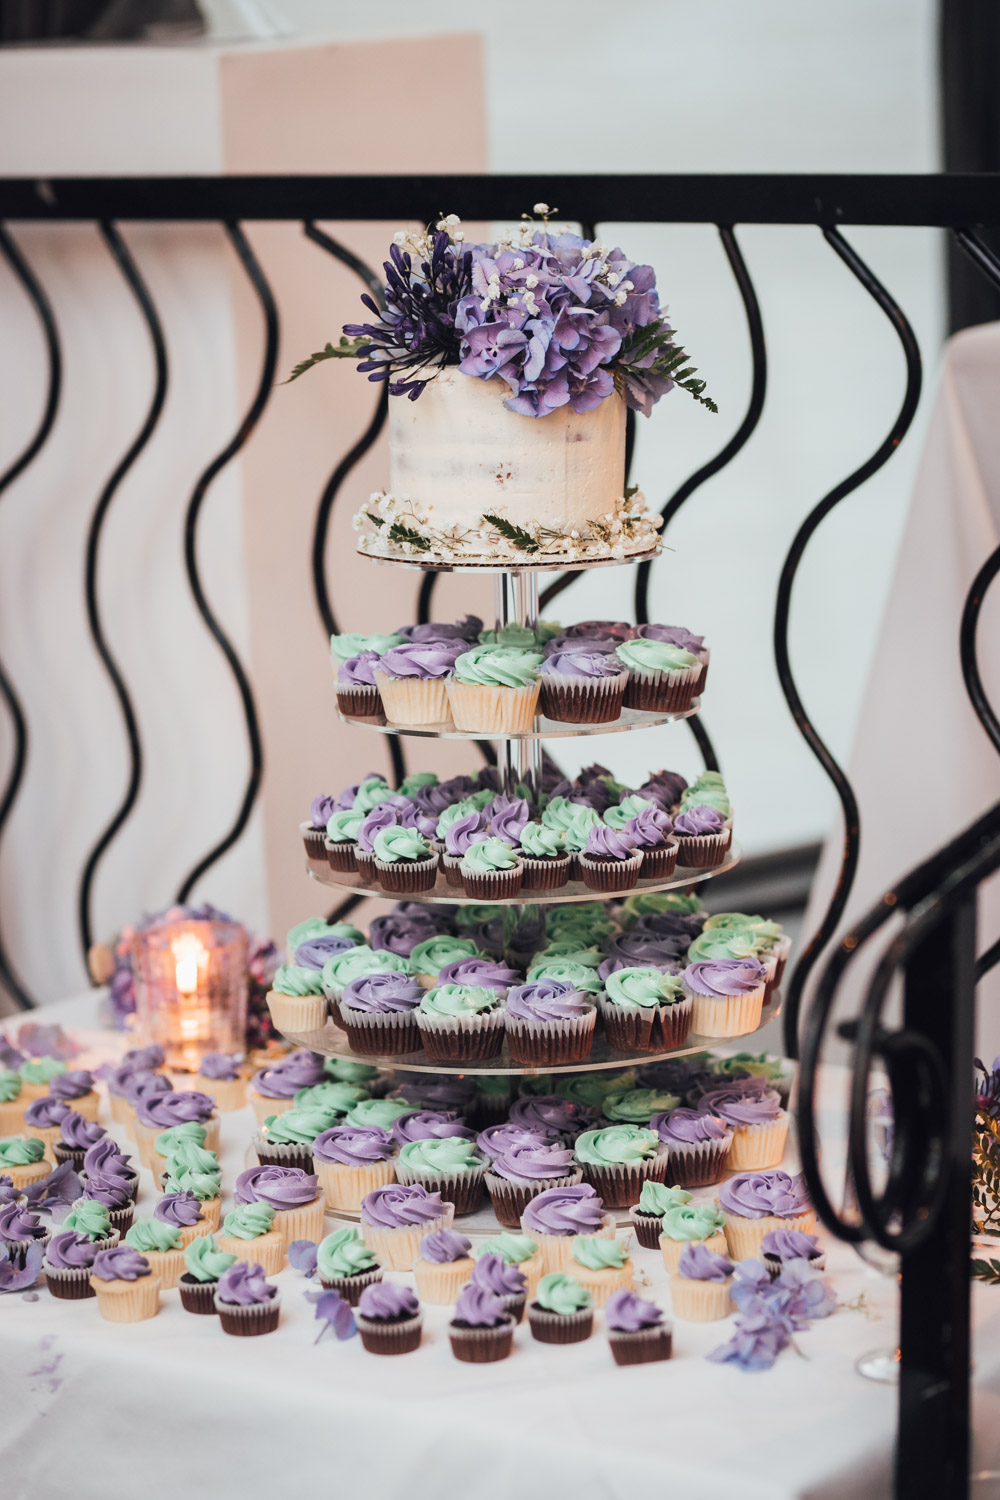 wedding cupcake brix & mortar restaurant wedding photography in yaletown vancouver bc